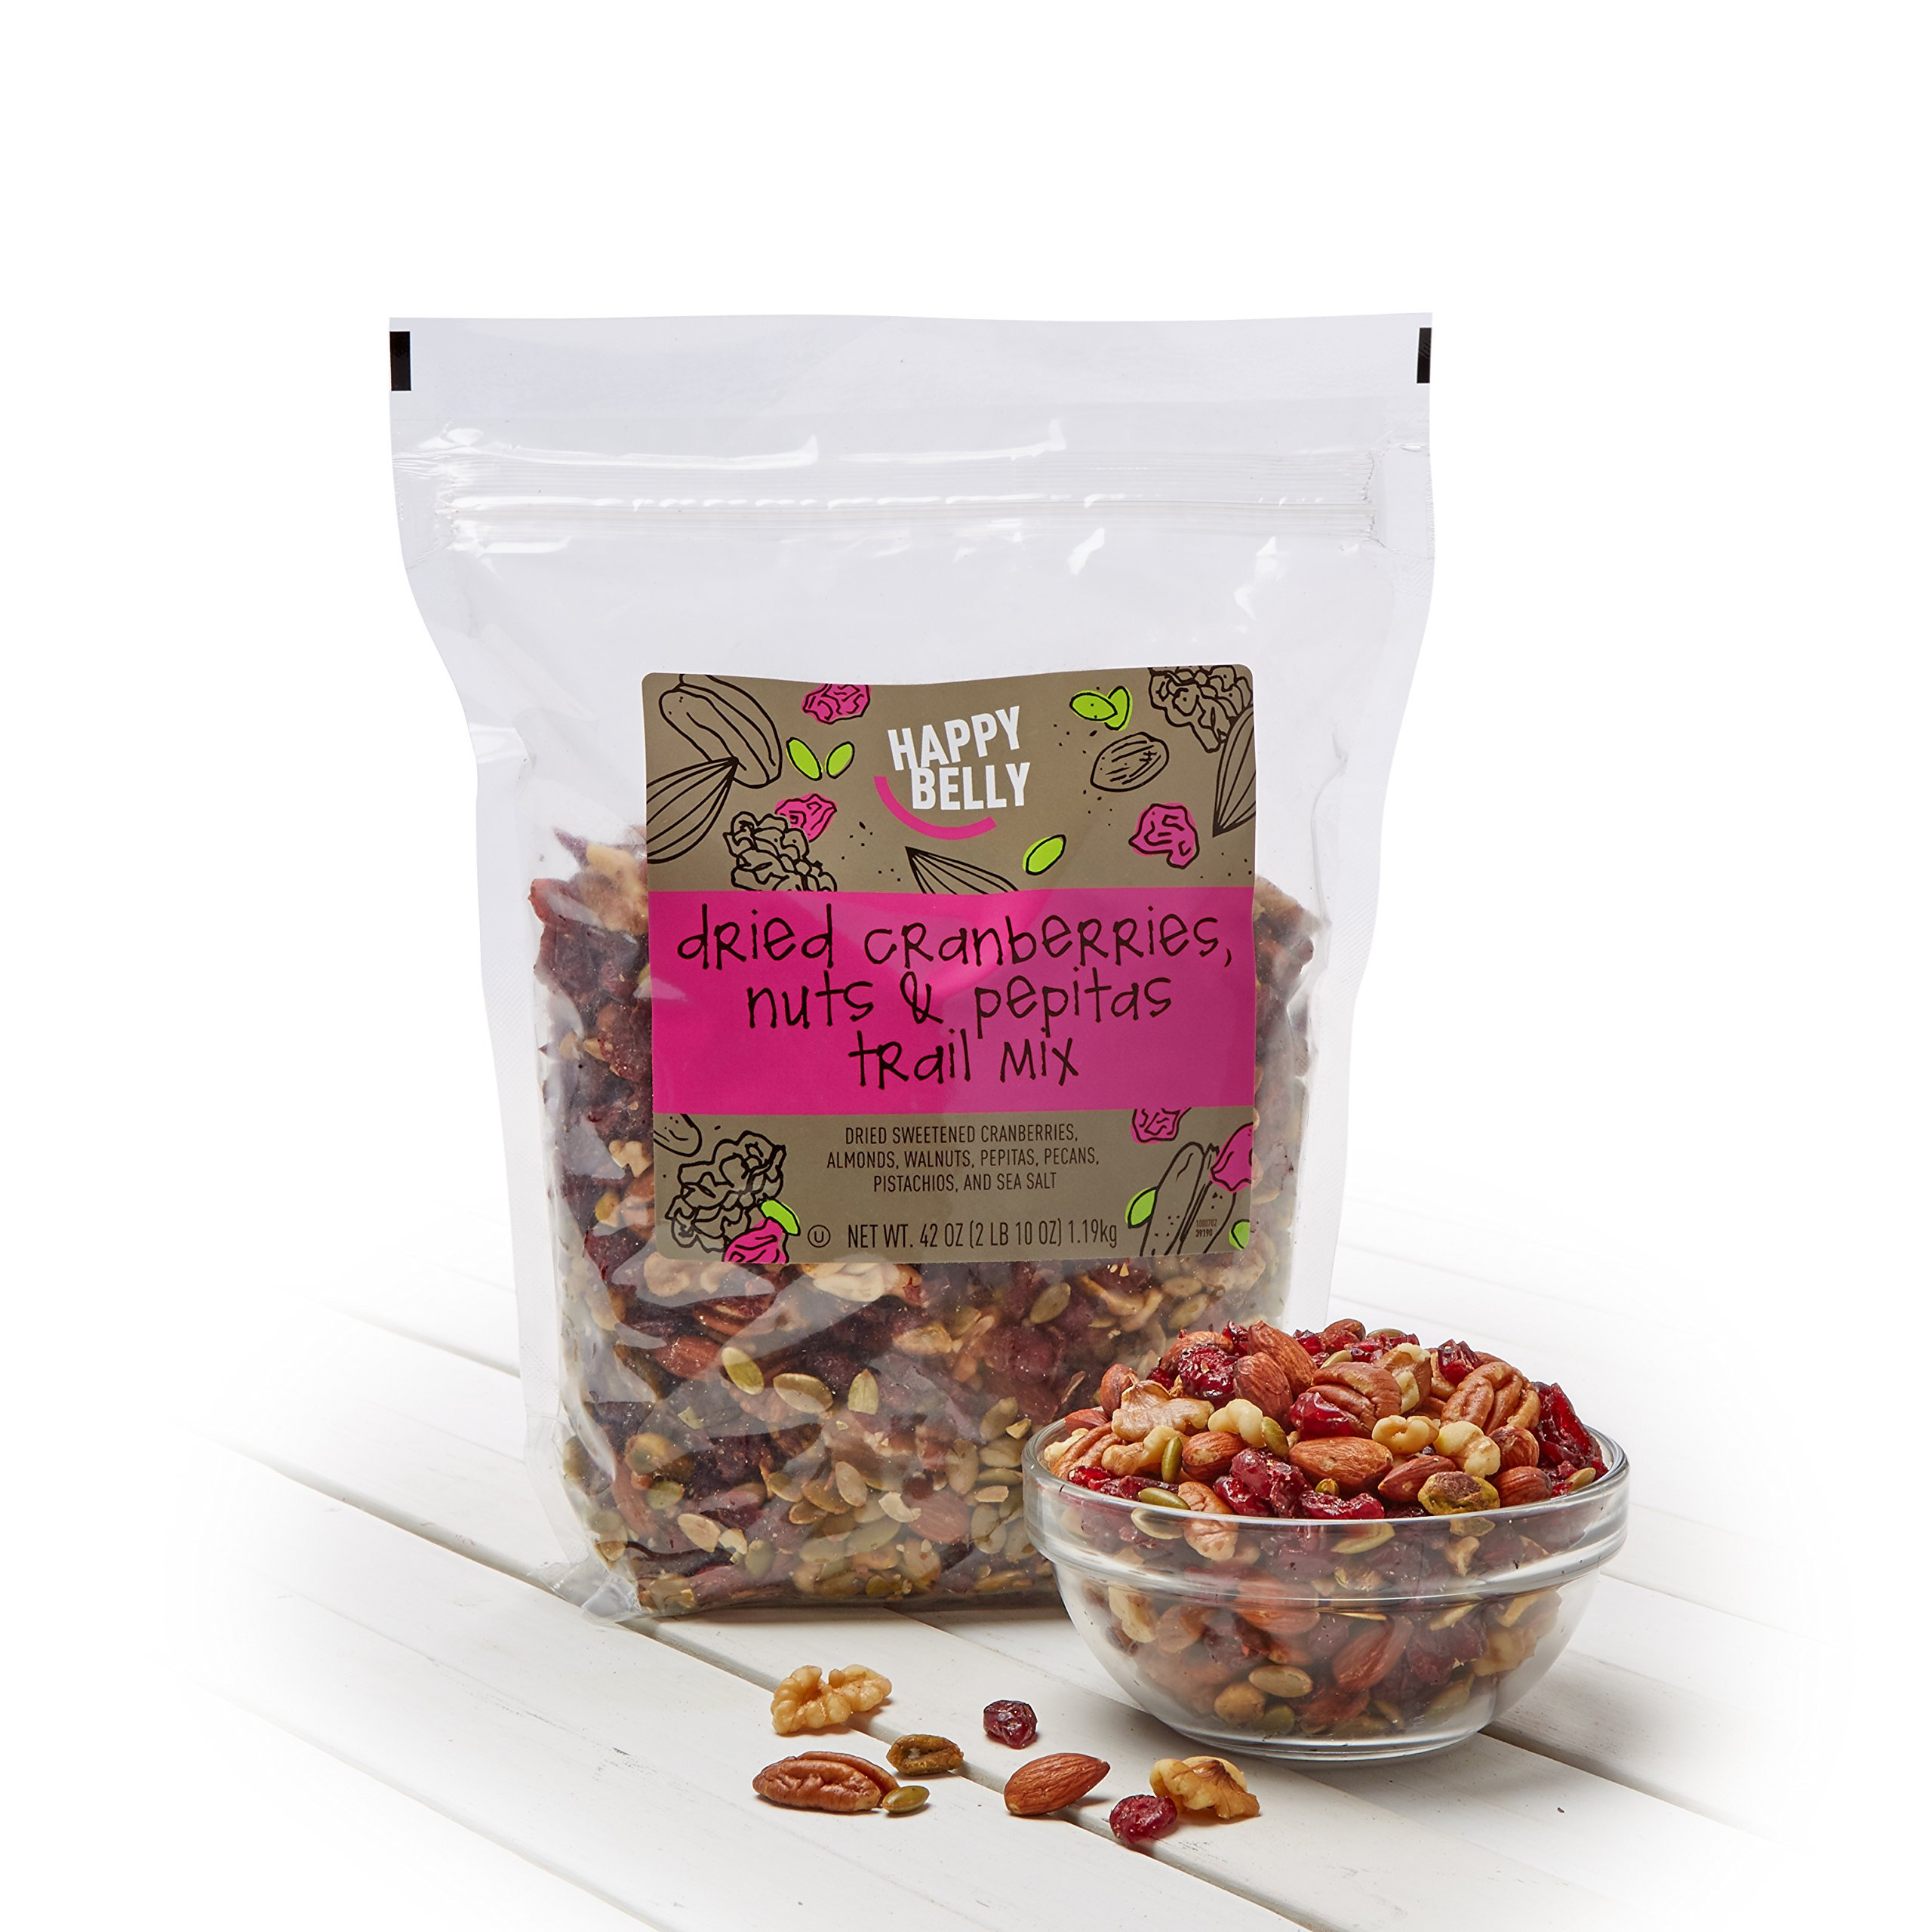 Amazon Brand - Happy Belly Dried Cranberries, Nuts & Pepitas Trail Mix, 42 ounce by Happy Belly (Image #2)